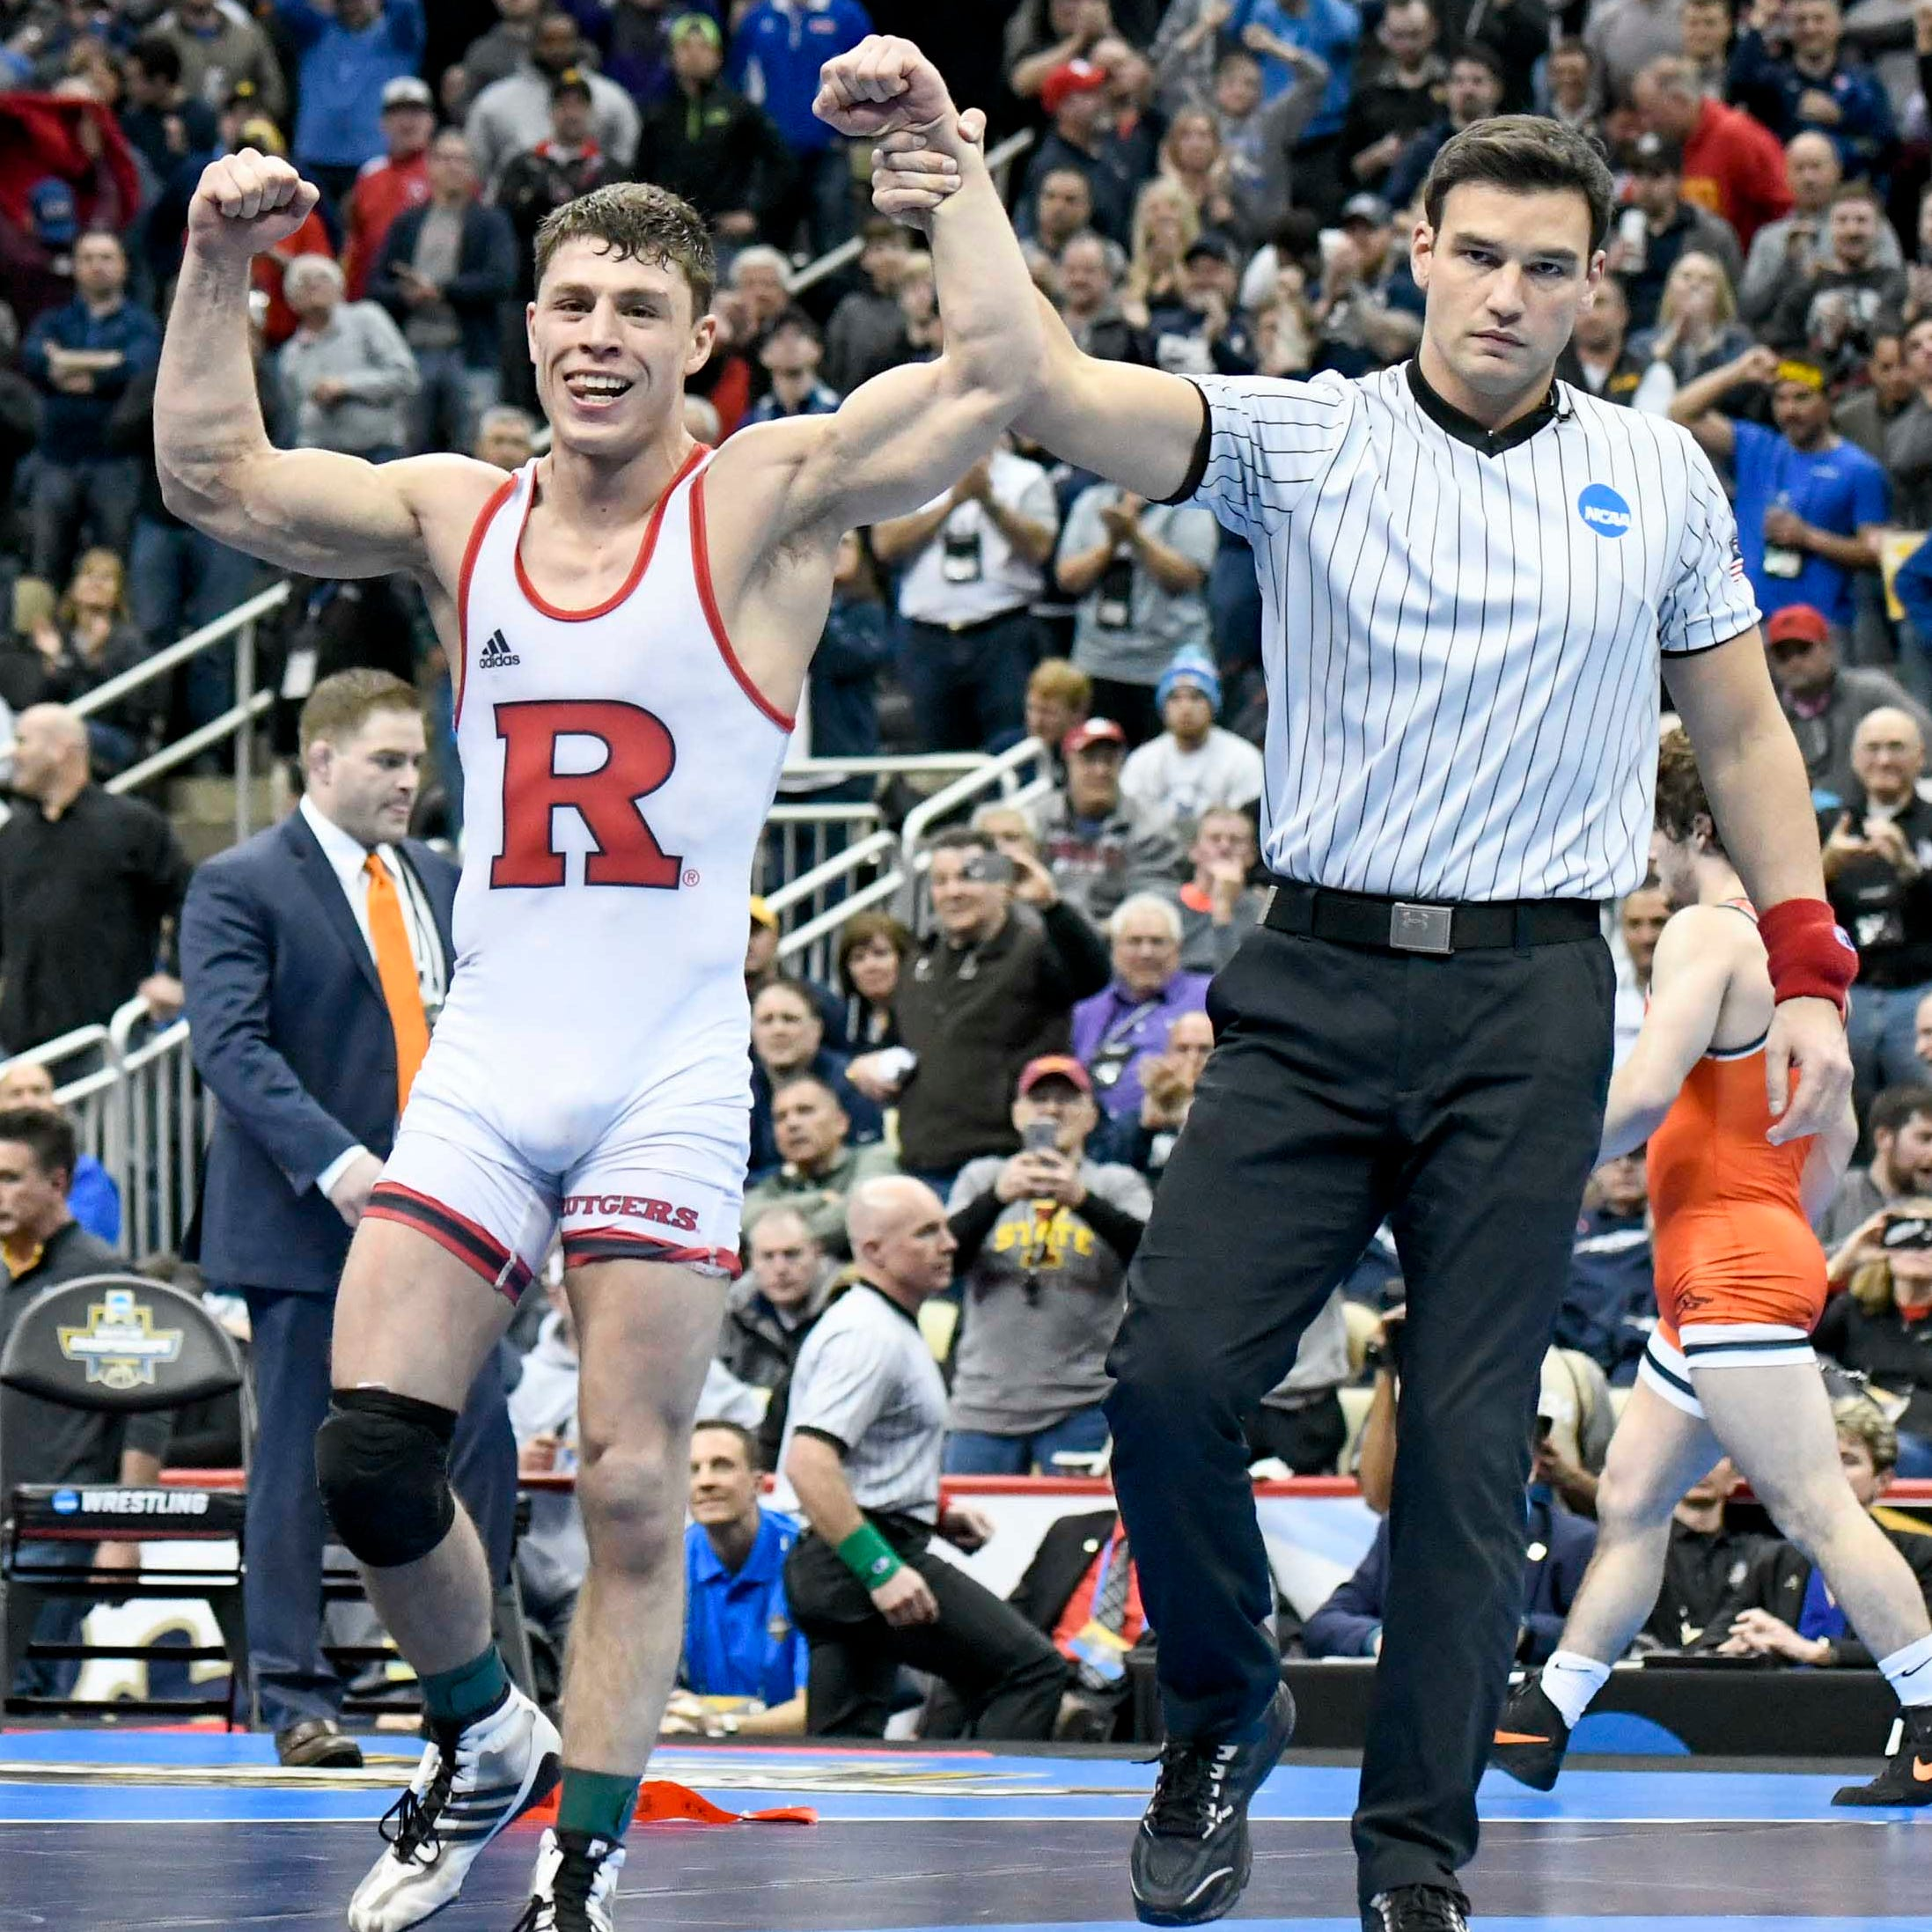 College wrestling: Rutgers Big Ten Conference opponents for 2020 season announced